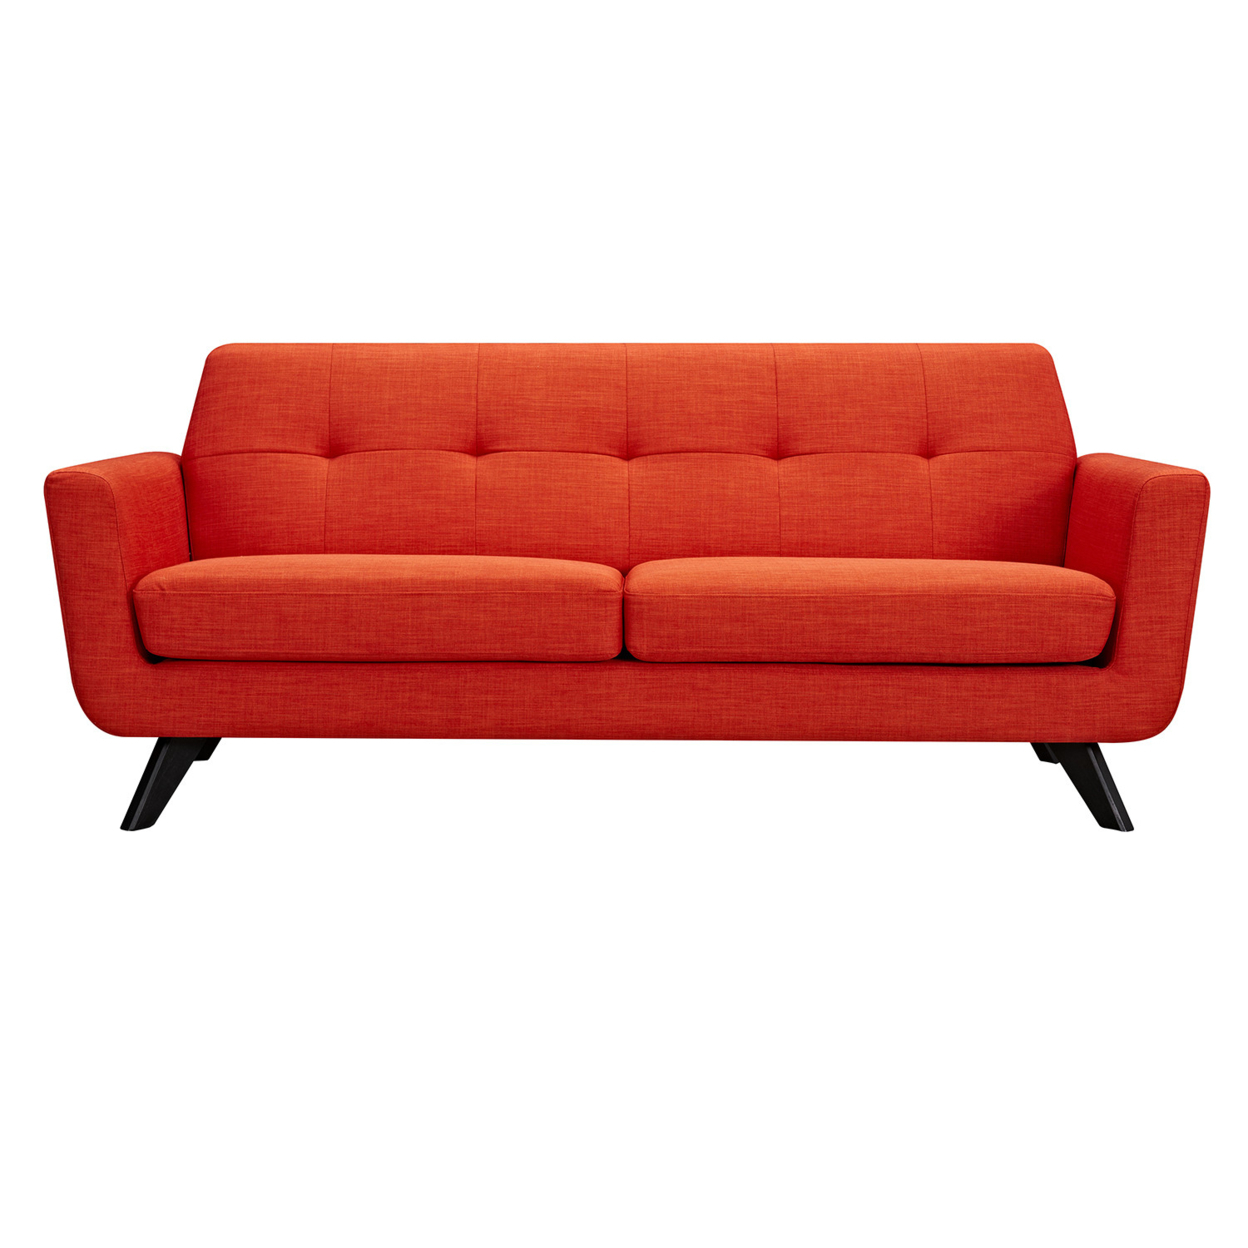 Orange sofa usa for Sofa orange